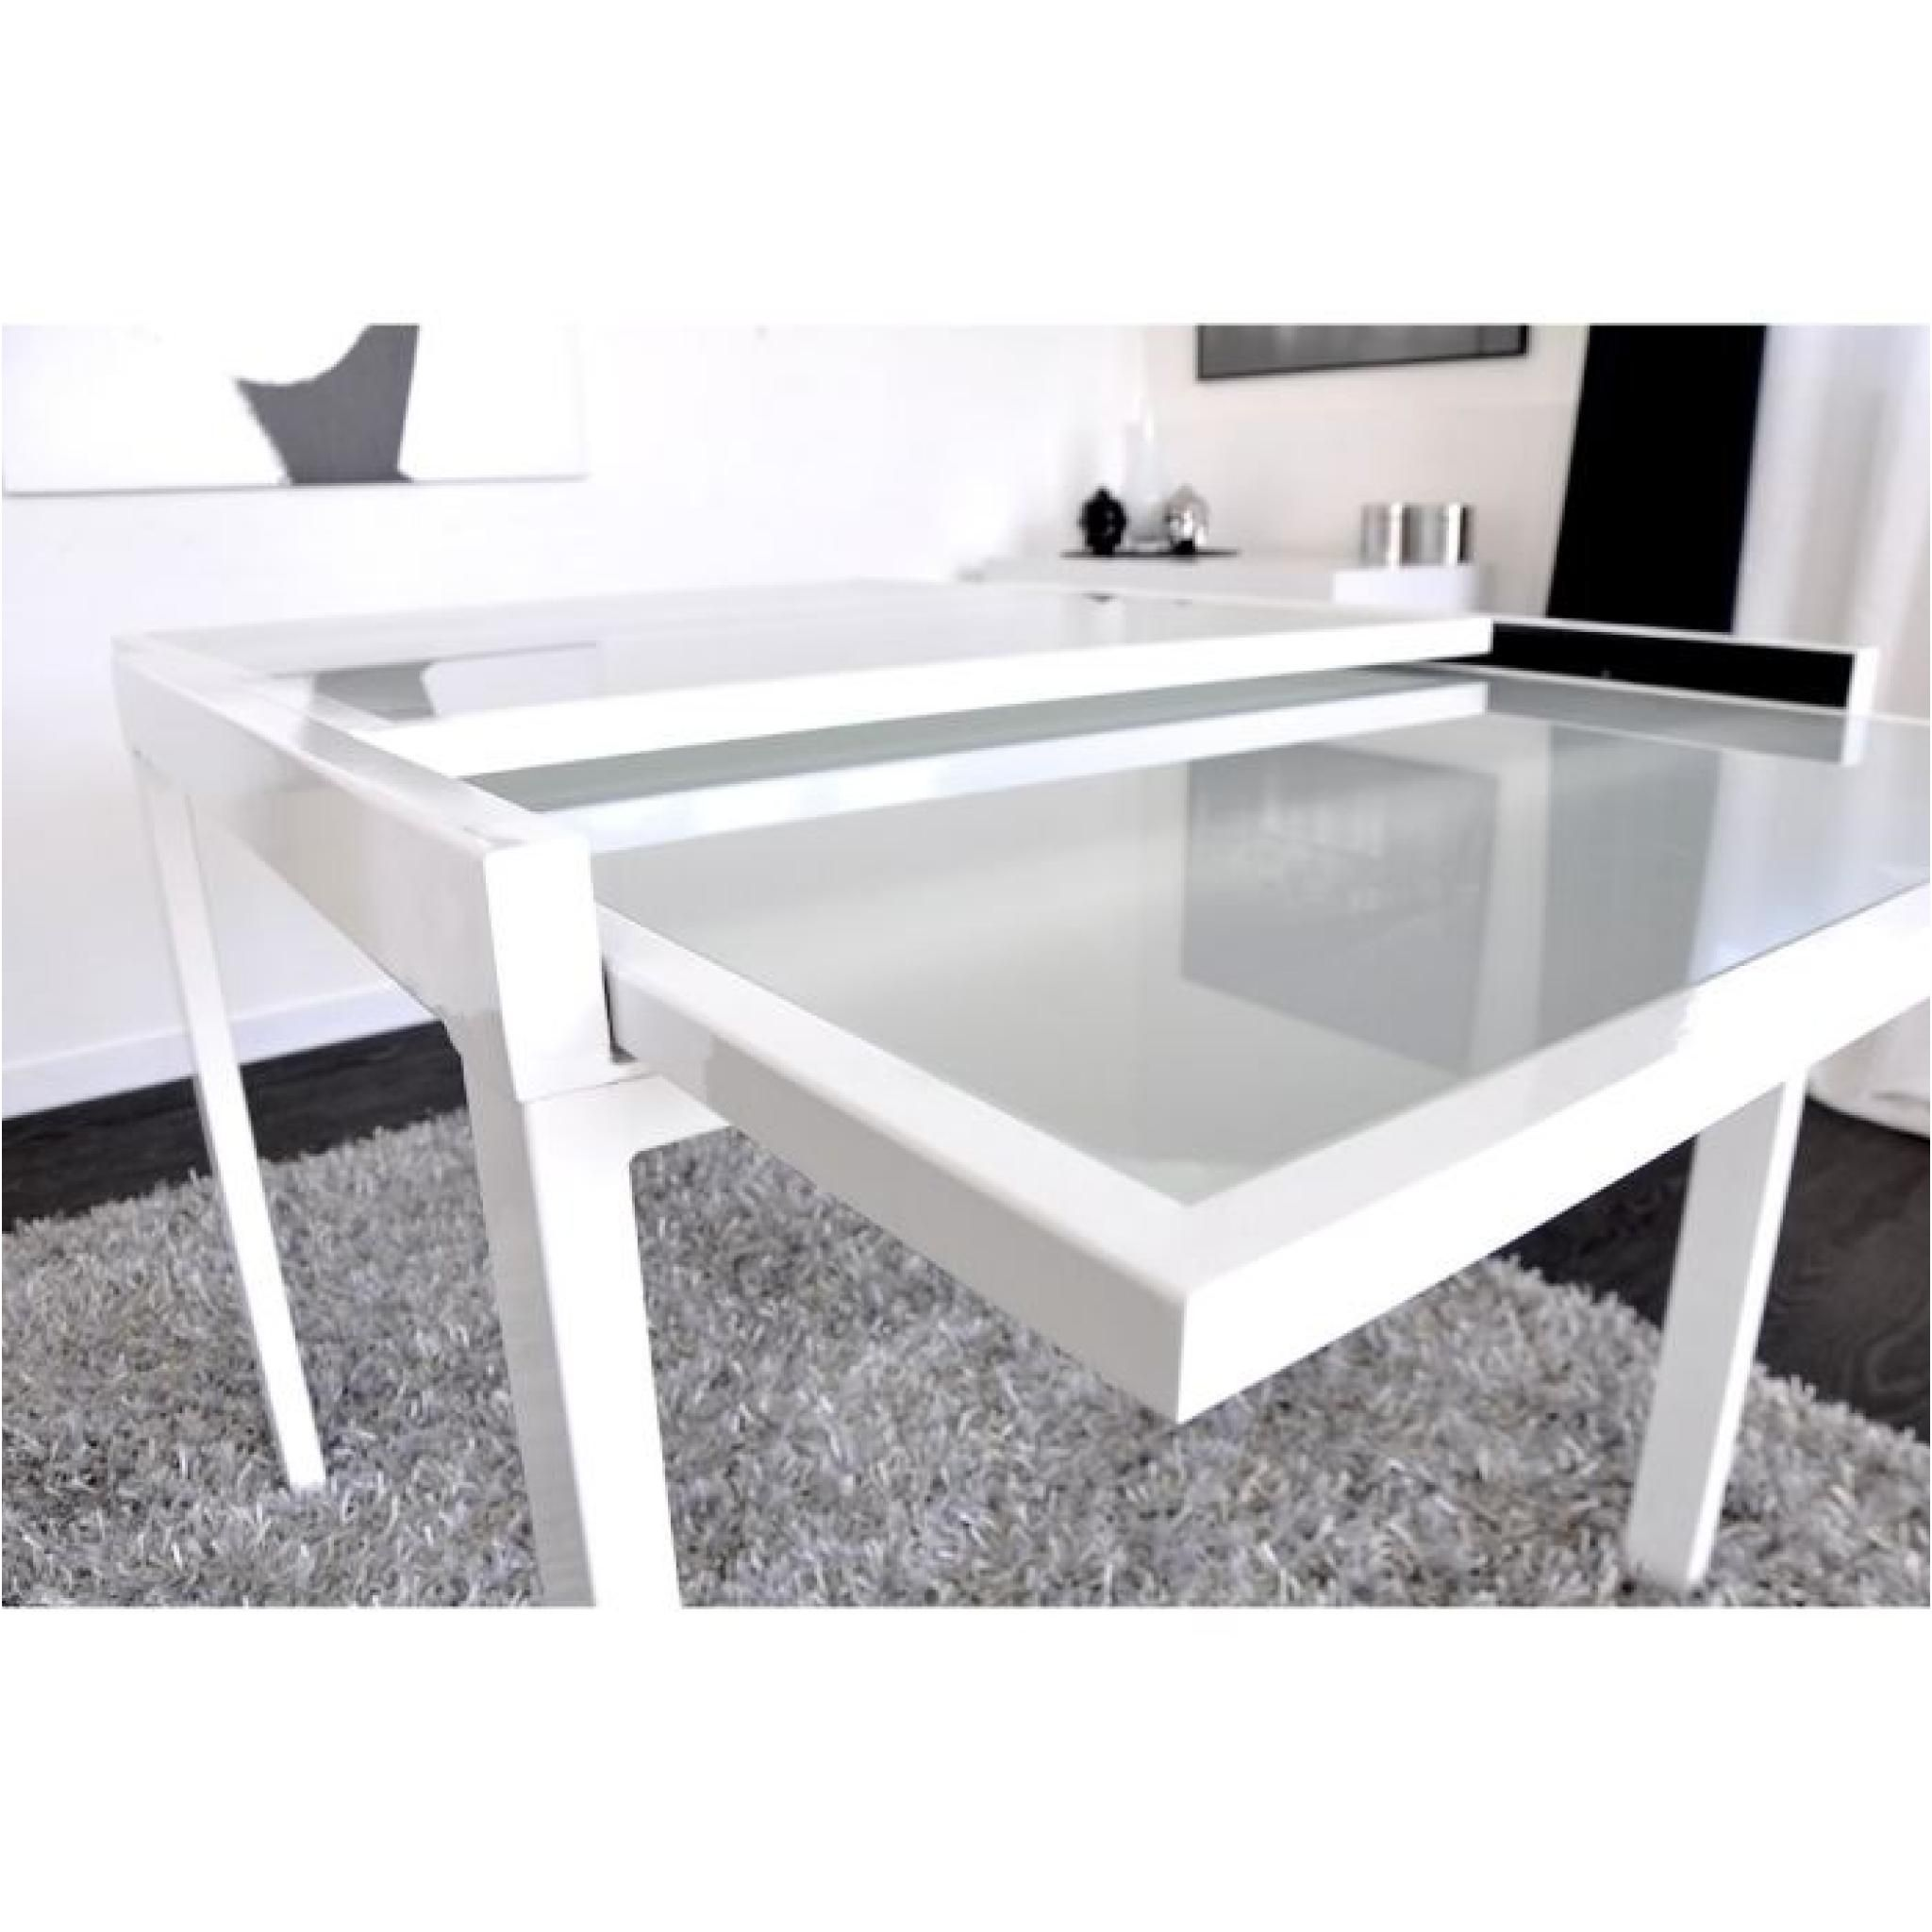 10 Positif Table Blanche Extensible Image Check more at